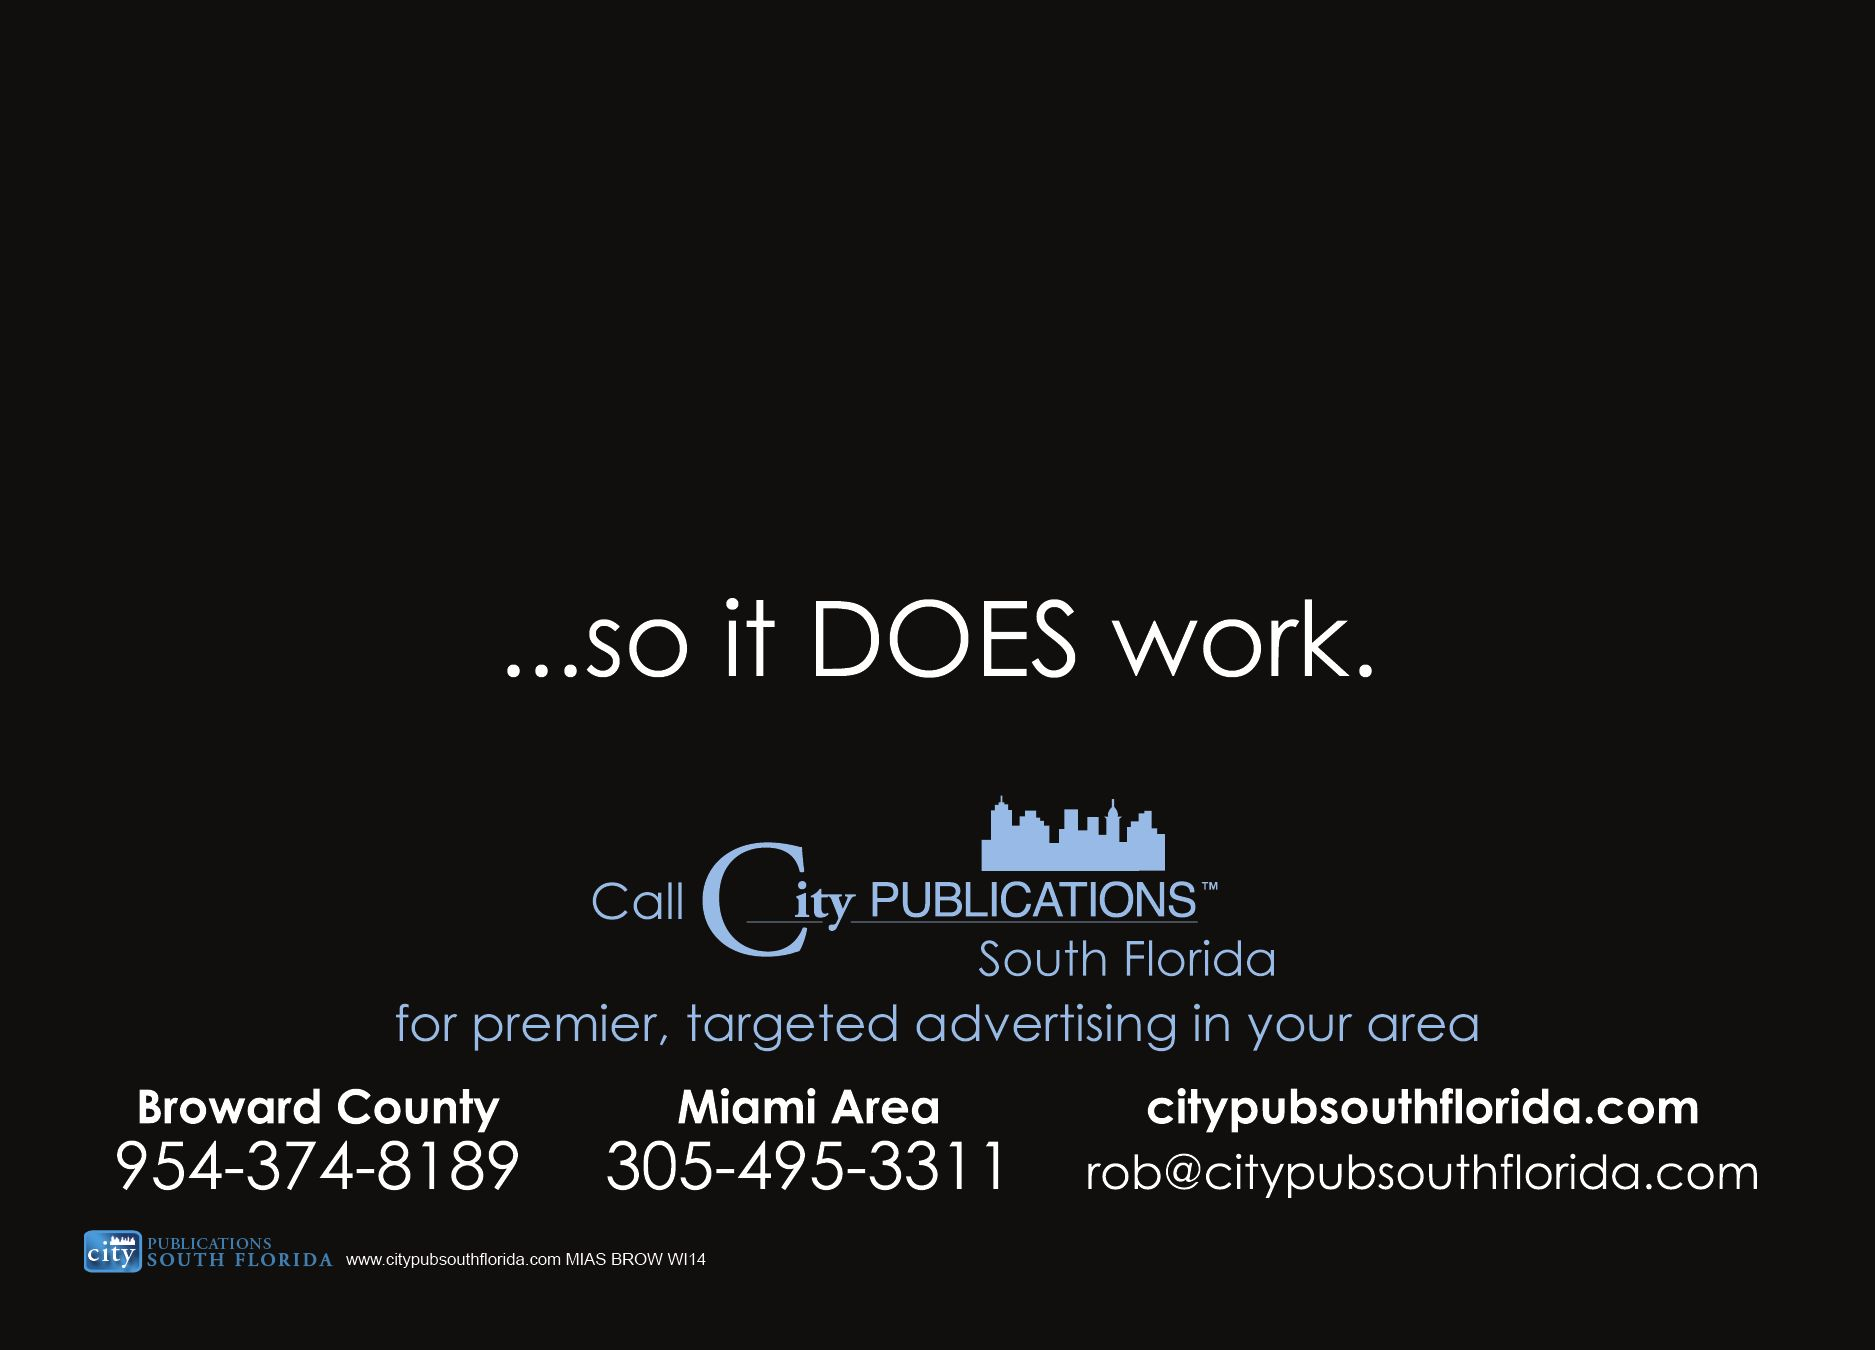 City Publications South Florida